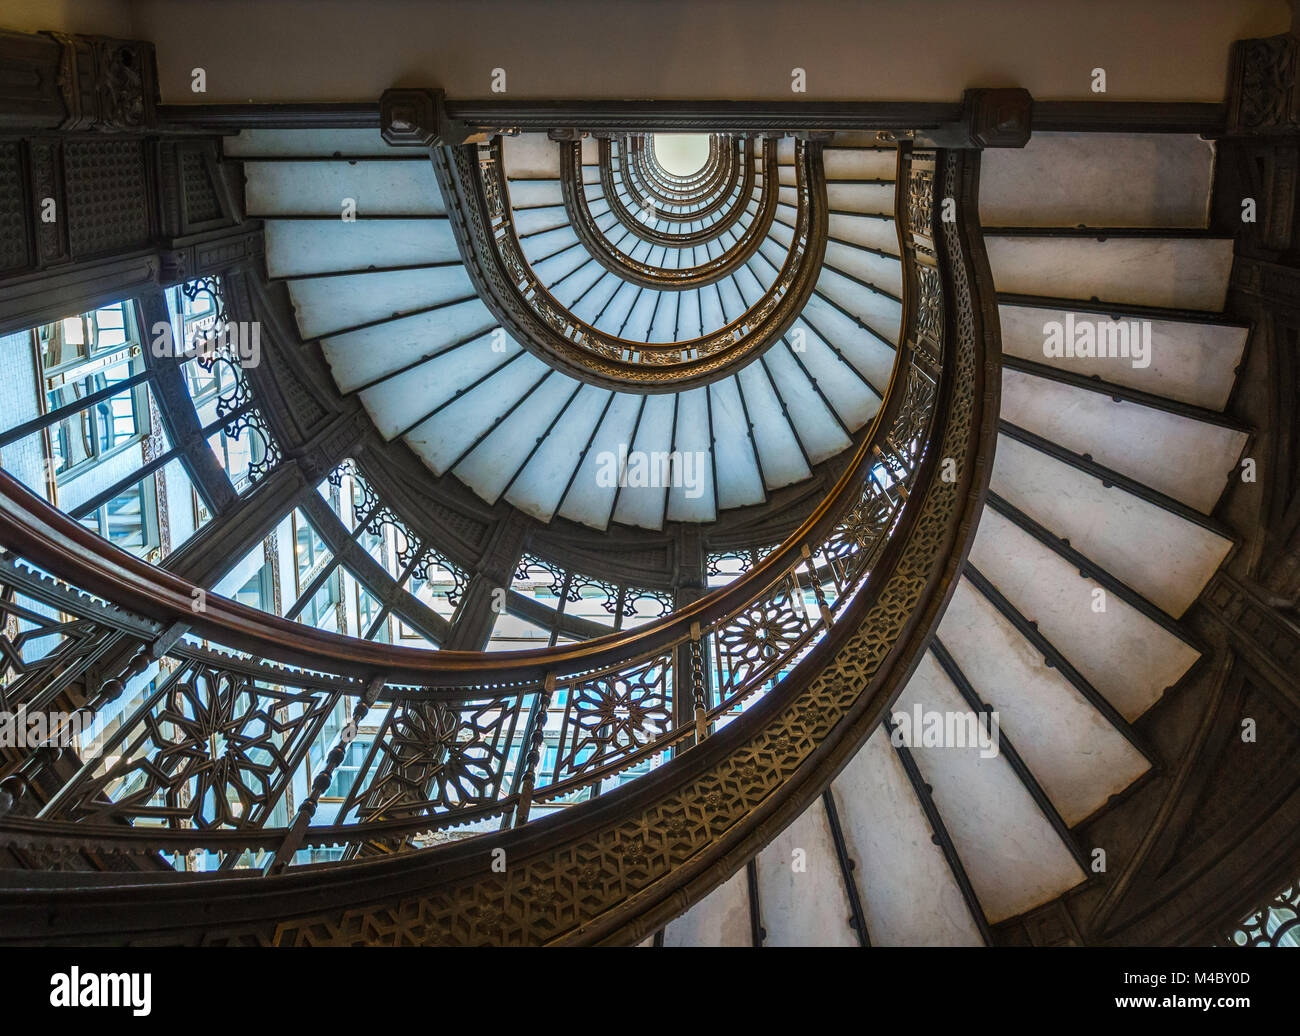 Frank Lloyd Wright Staircase High Resolution Stock Photography And   Frank Lloyd Wright Stairs   Basement   Dorm   Design   Obras   Floor Plan